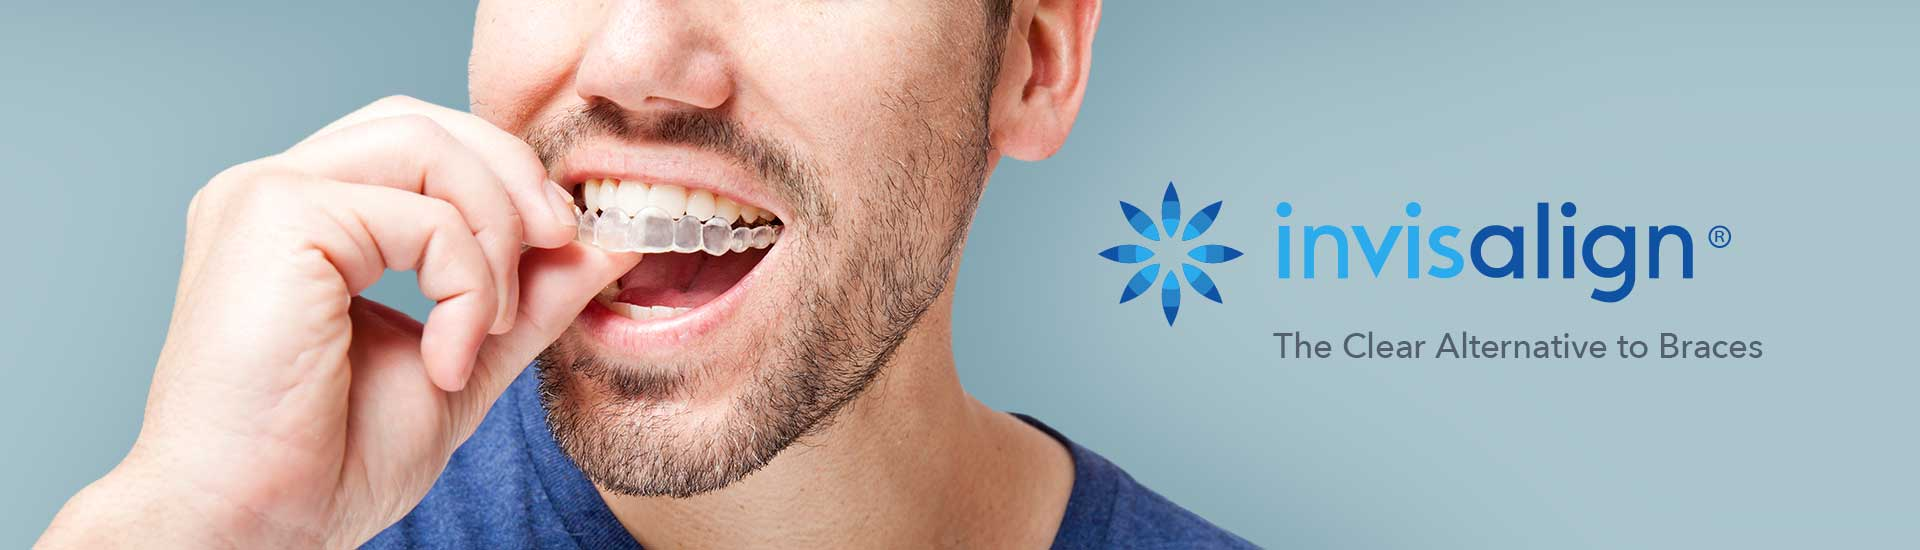 Inivisalign Clear Braces